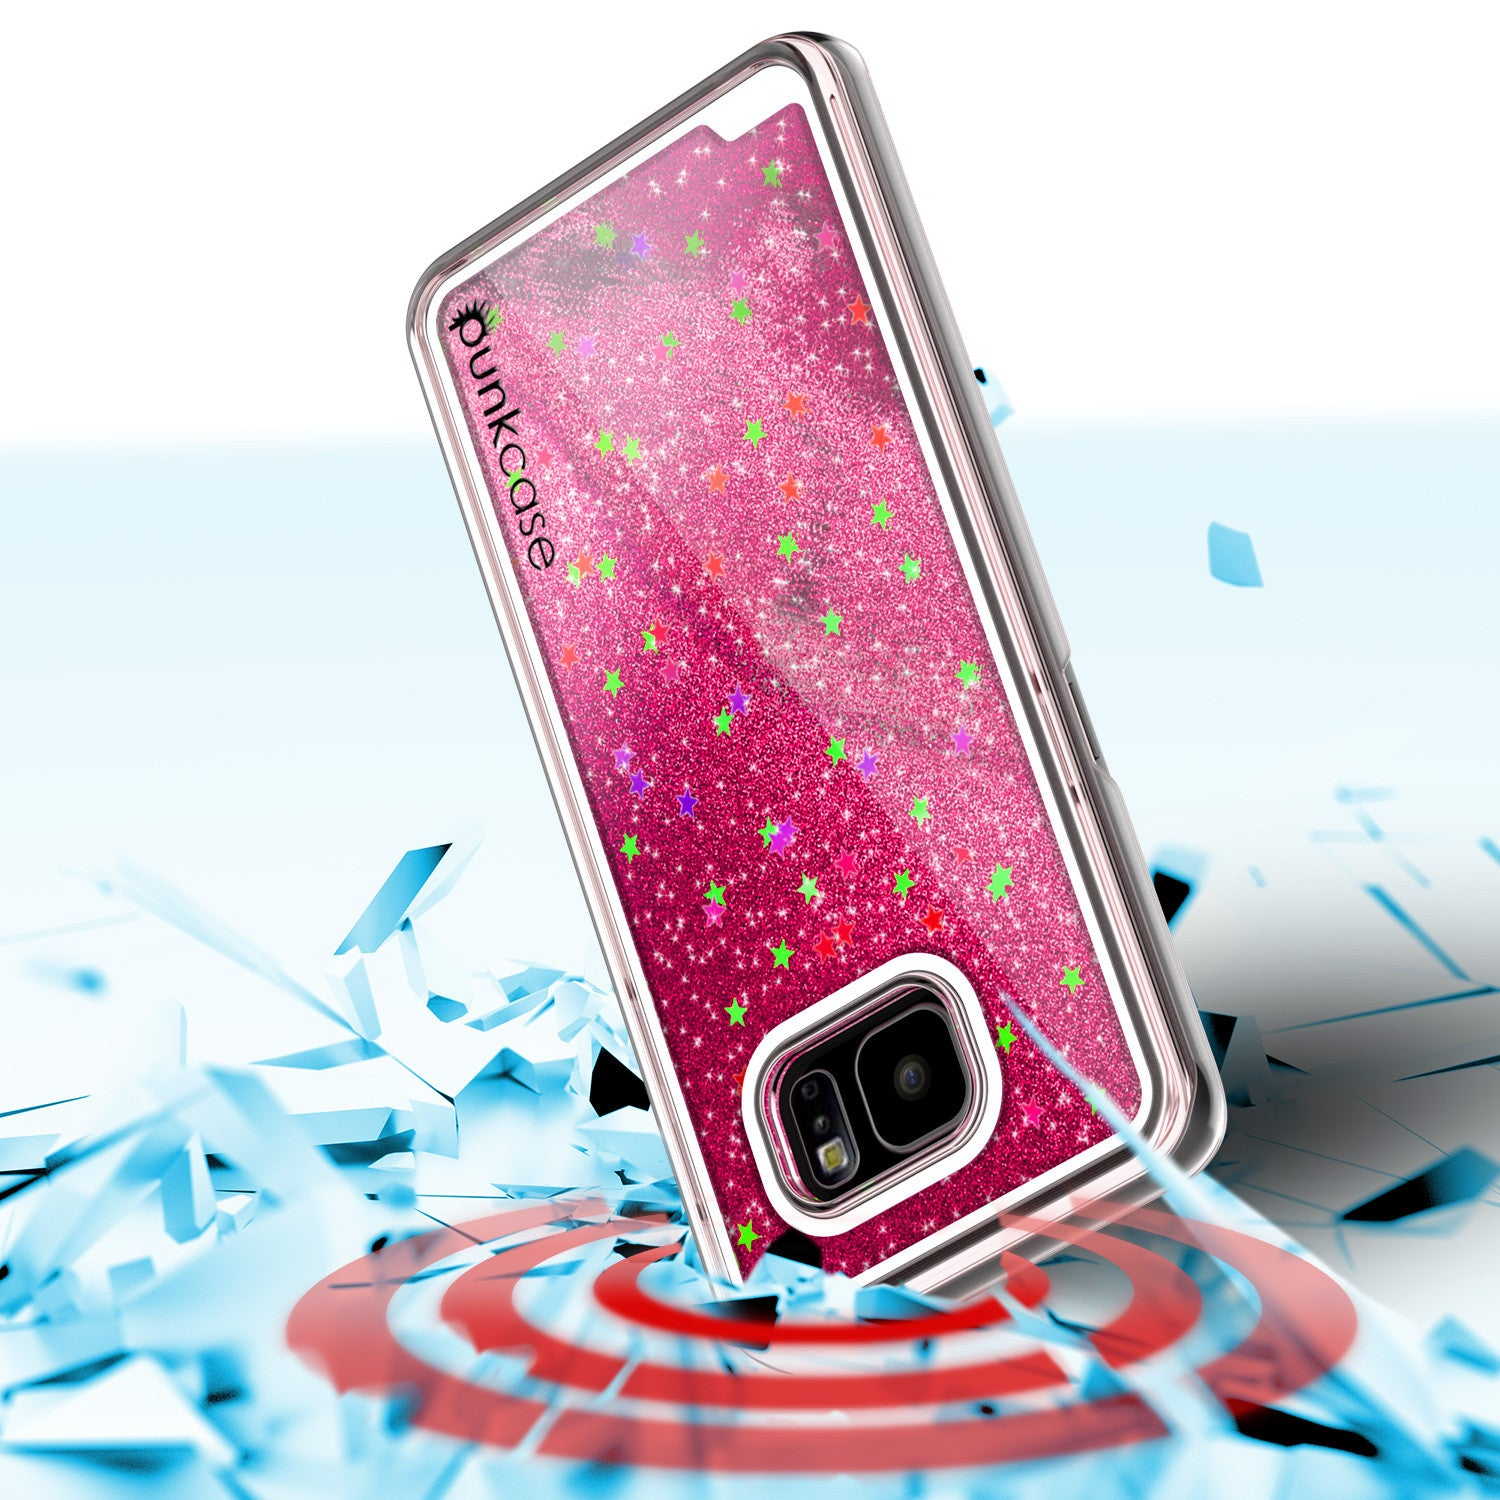 S7 Edge Case, PunkCase LIQUID Pink Series, Protective Dual Layer Floating Glitter Cover